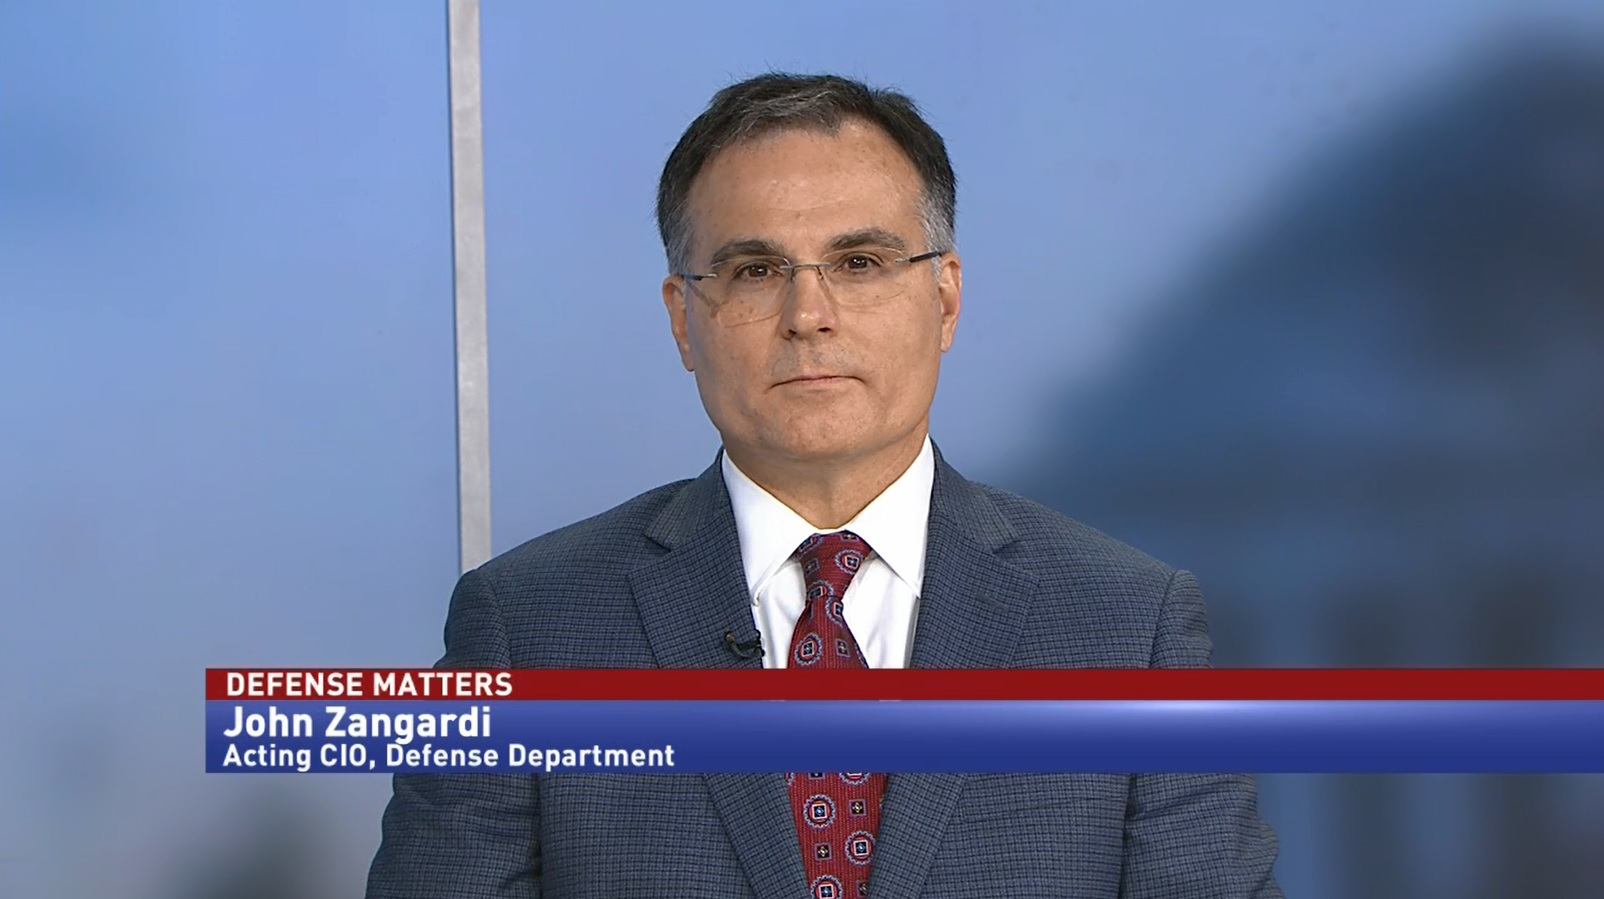 Acting CIO at DoD focuses on cyber personnel, data center savings